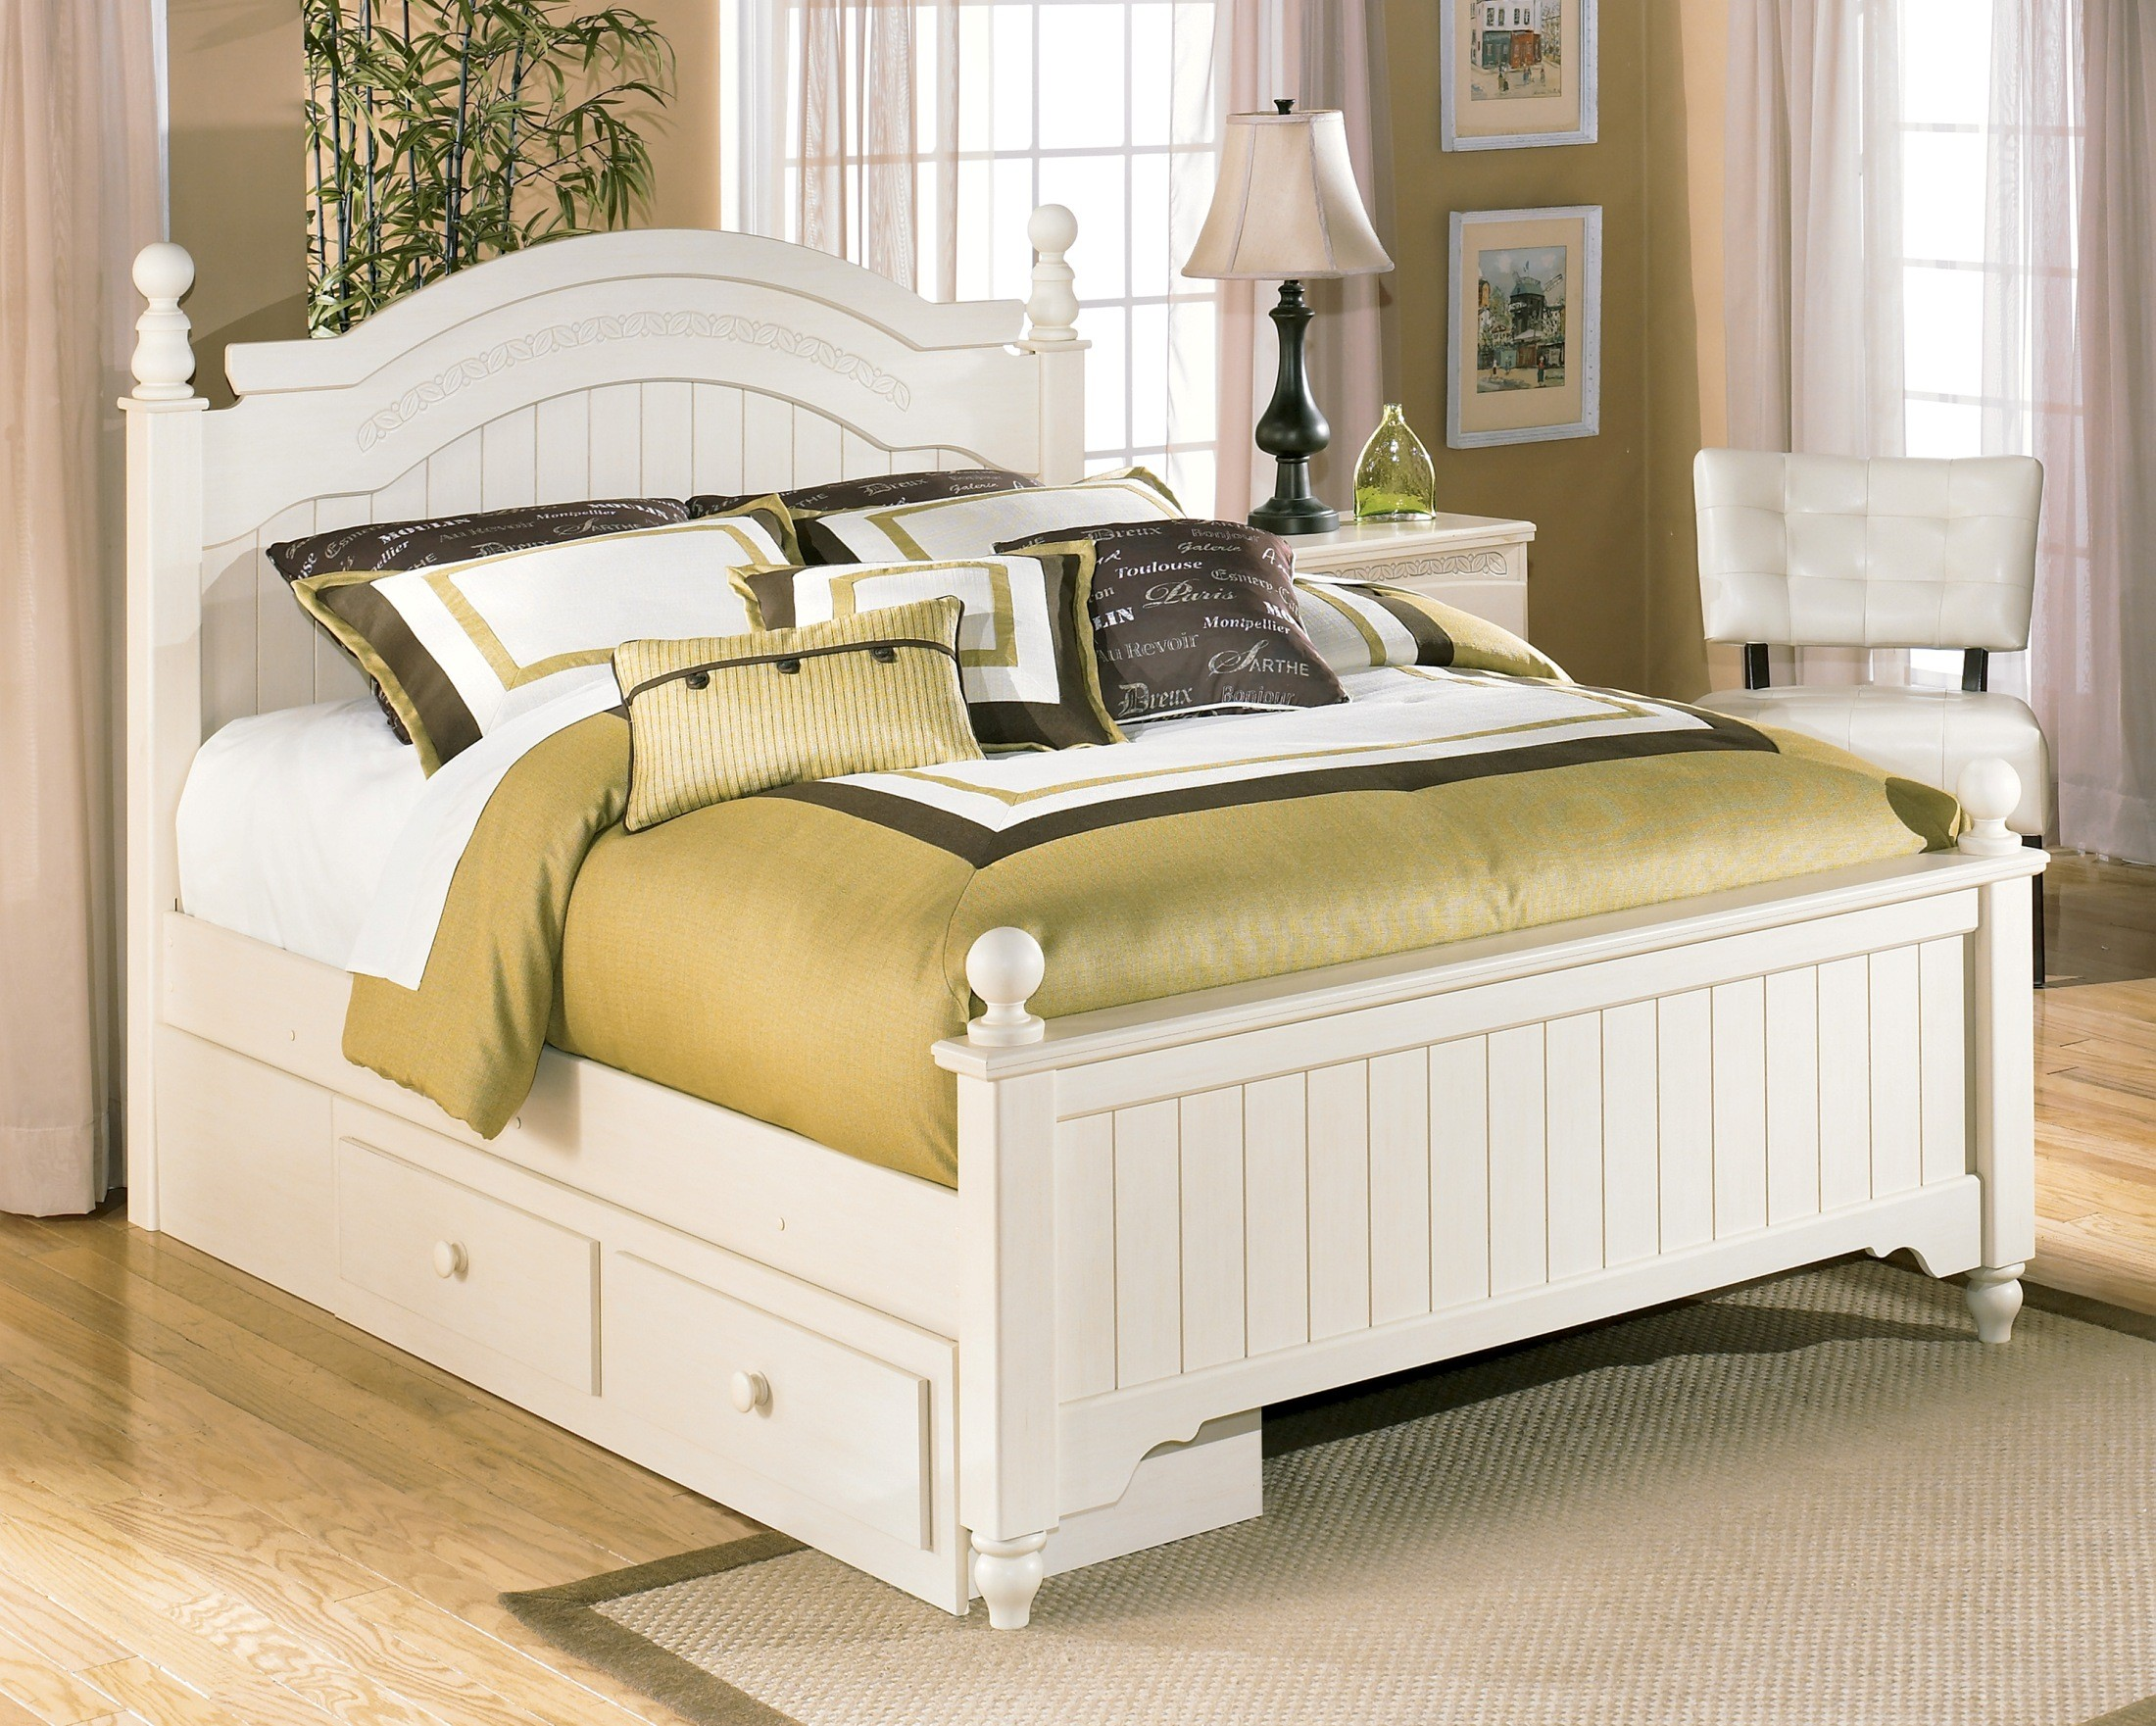 Cottage retreat queen poster storage bed from ashley b213 for Cottage style furniture